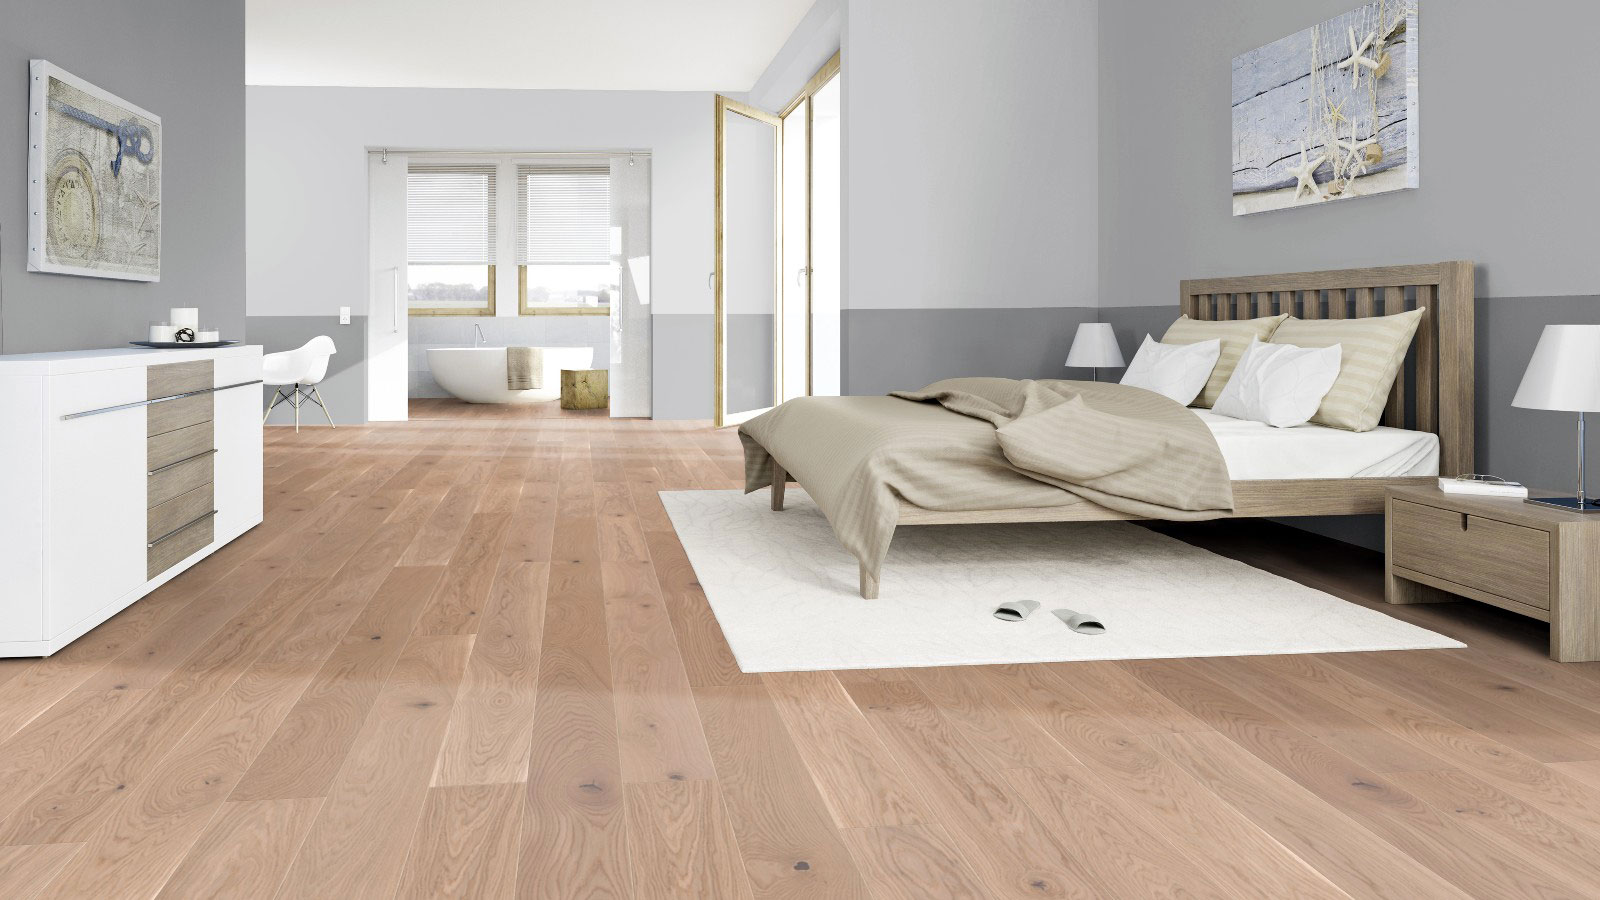 eal Natural Wood Floors Vancouver - UOHUS Vancouver B - ^